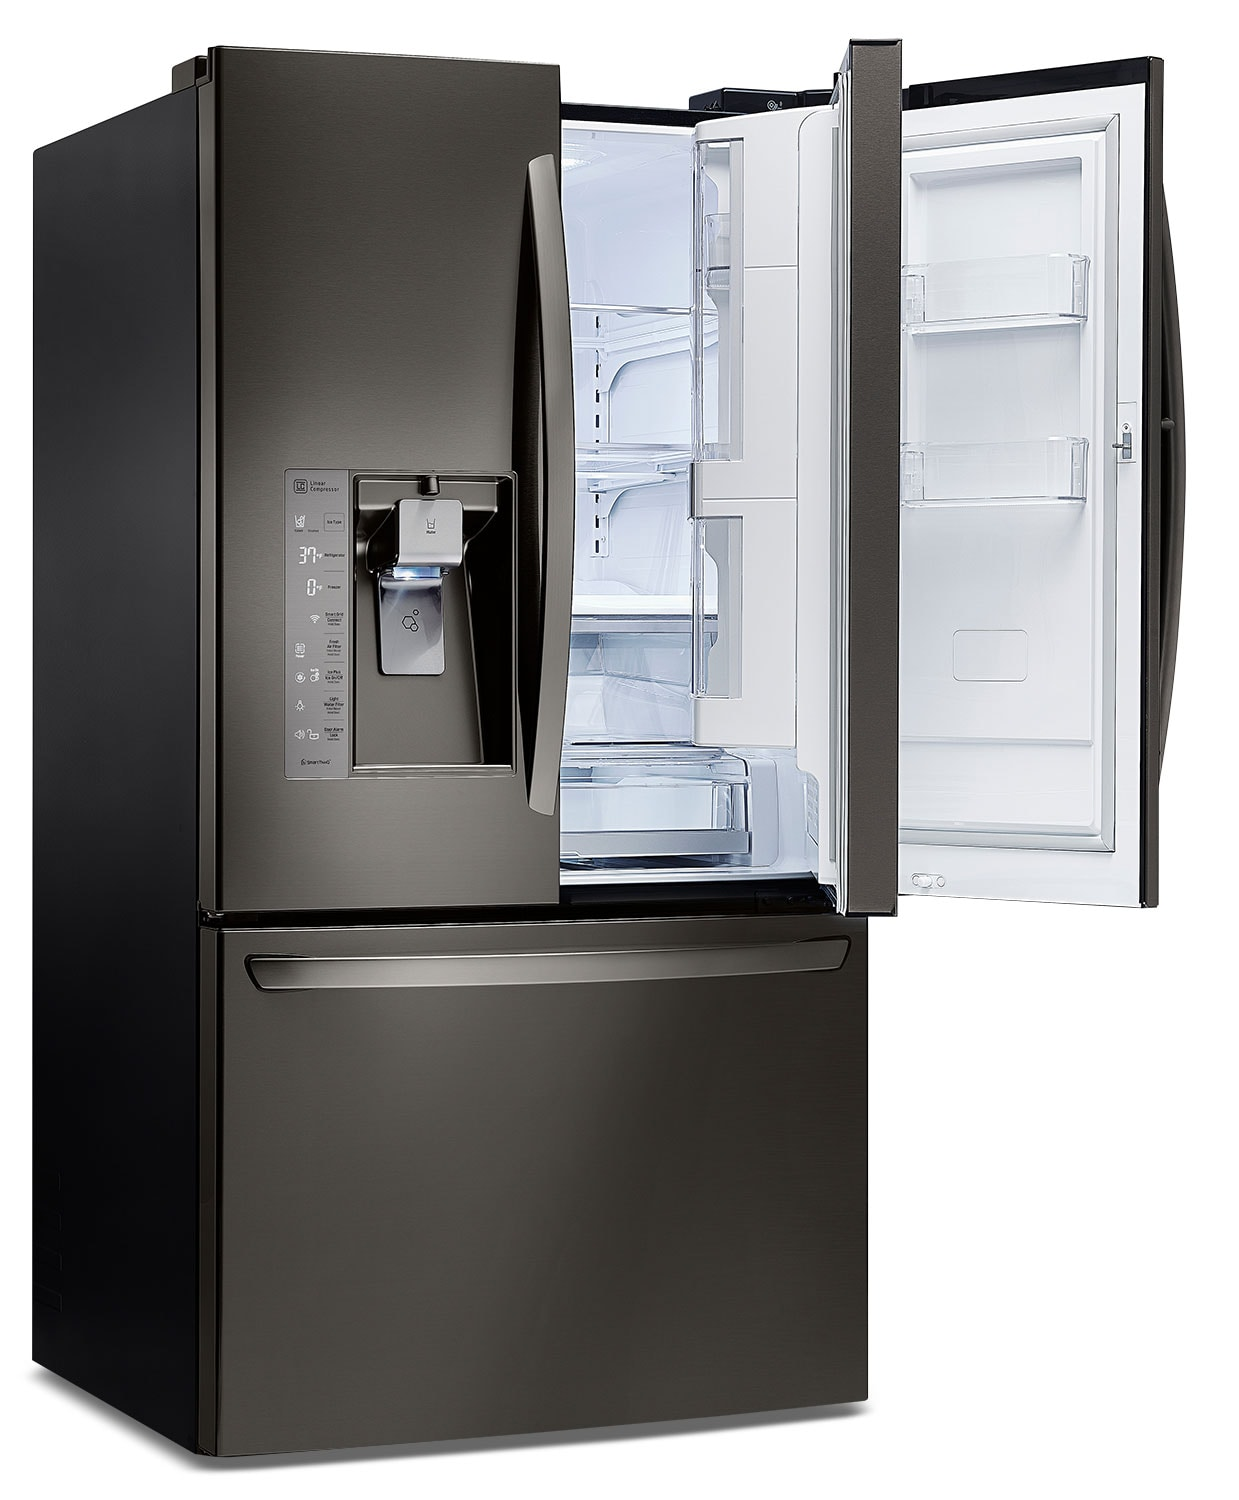 Lg Appliances Black Stainless Steel French Door